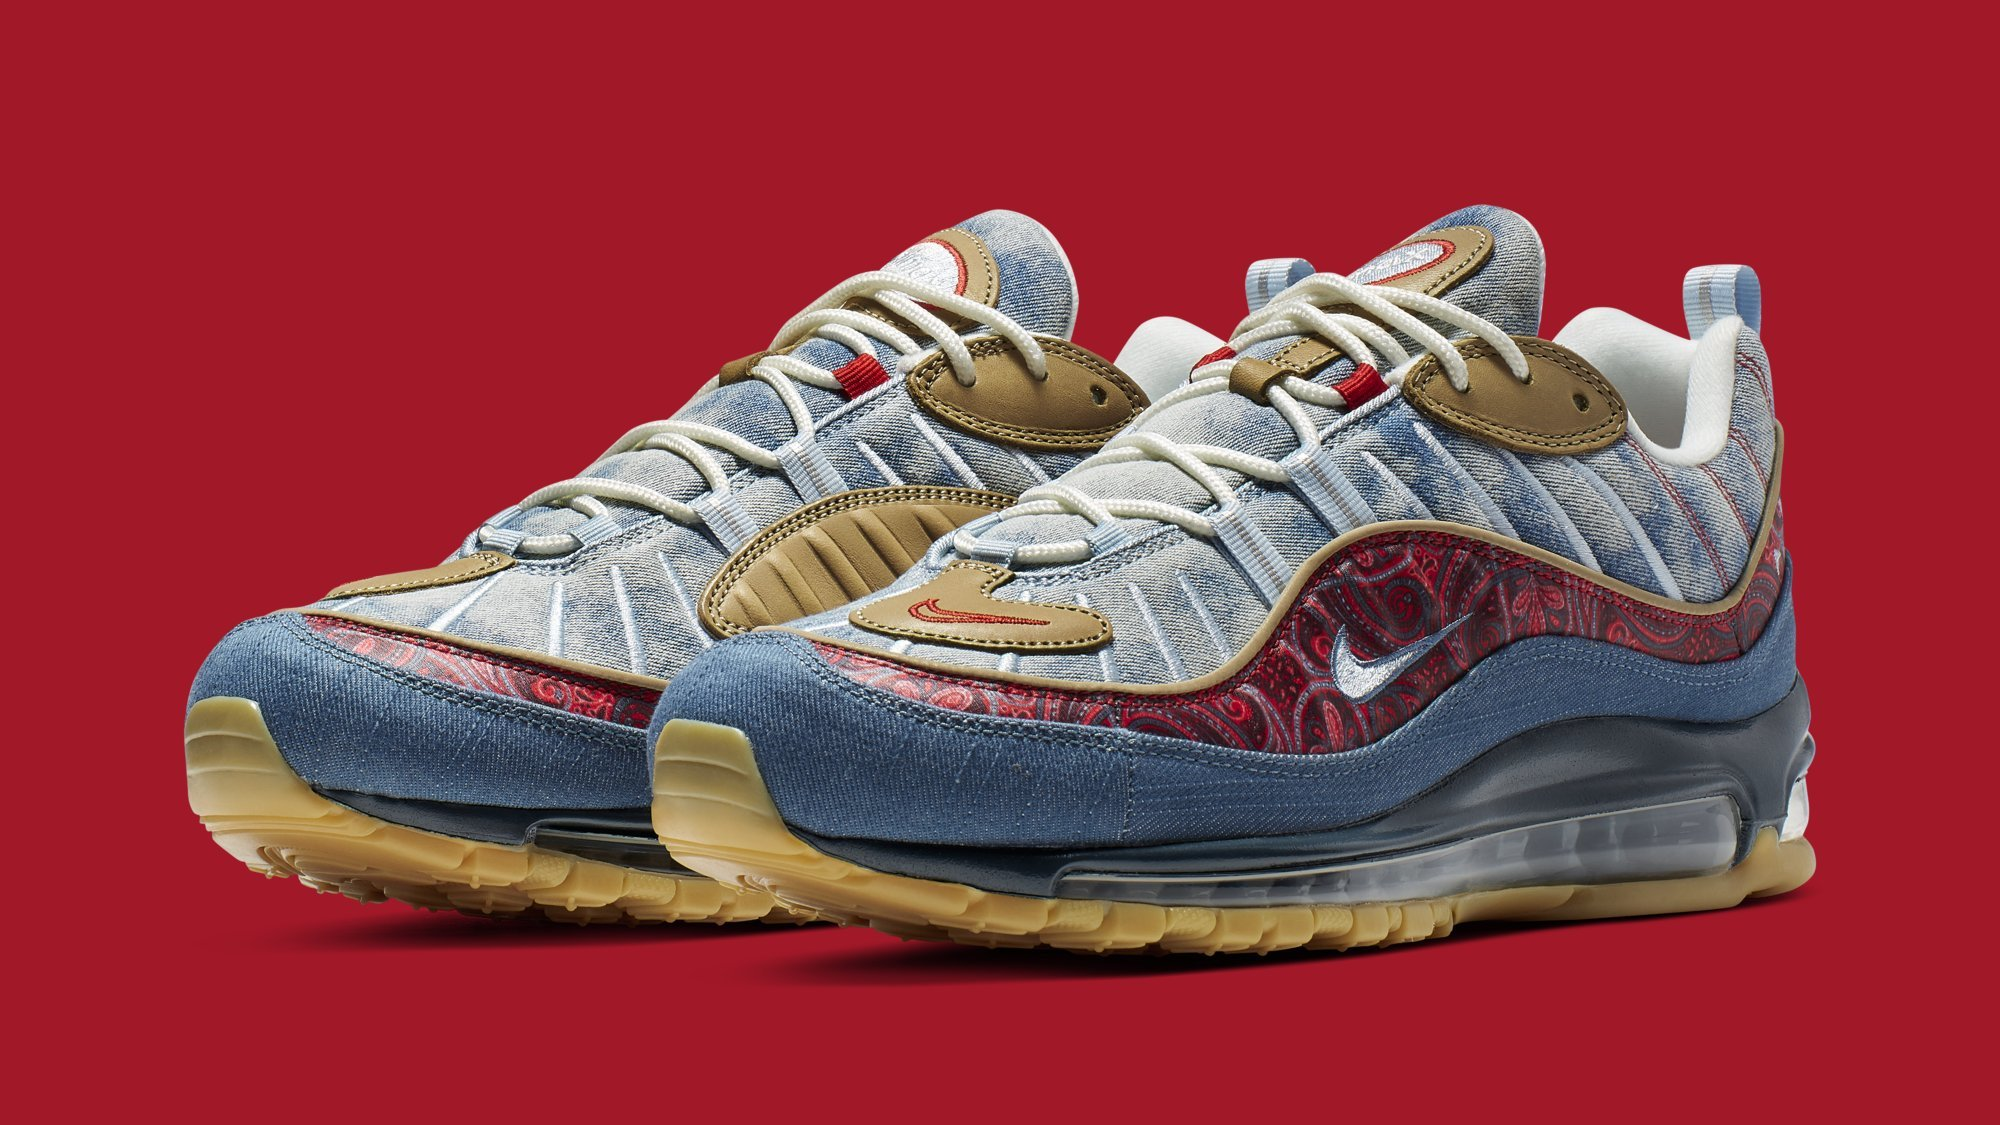 eb584d73 Nike Air Max 95 BV6059-200 Air Max 97 BV6056-200 Air Max 98 BV6045-400  'Wild West' Pack Release Date | Sole Collector